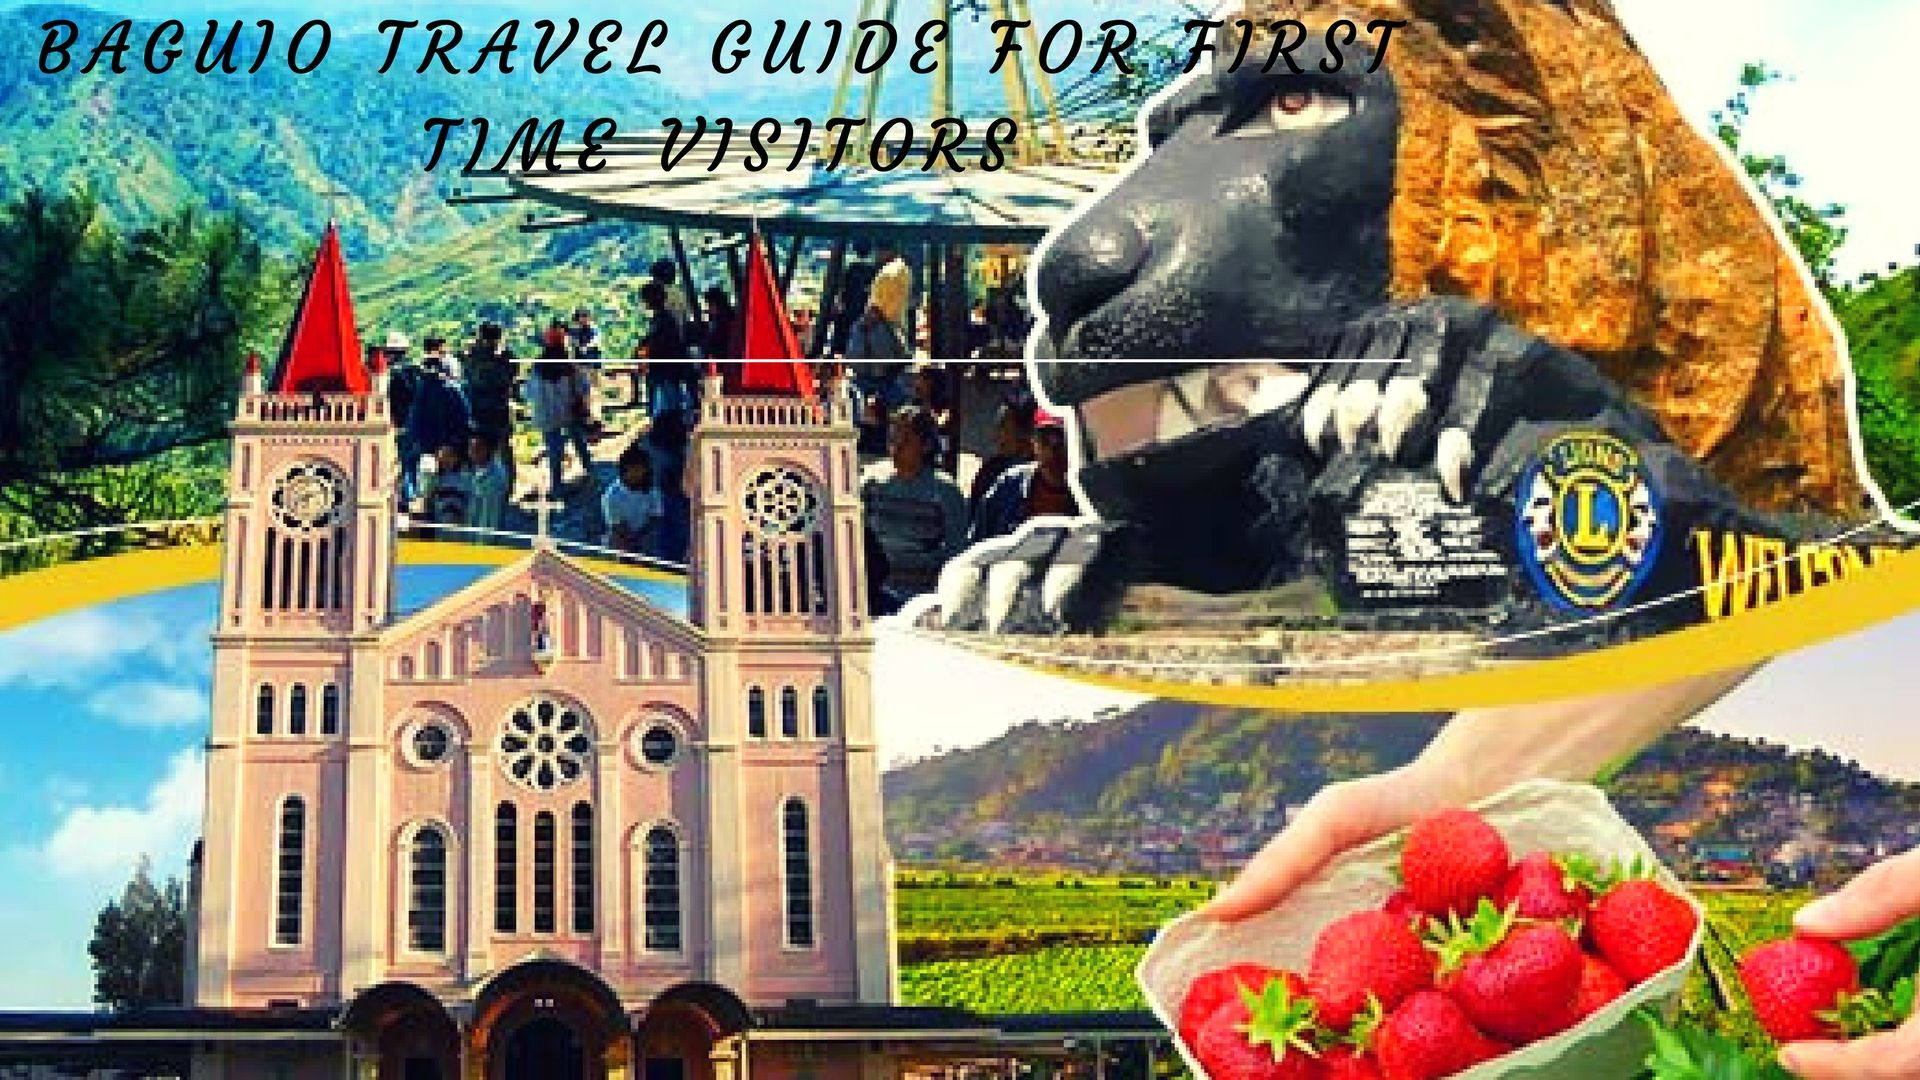 Baguio travel guide for first time visitors travel guide